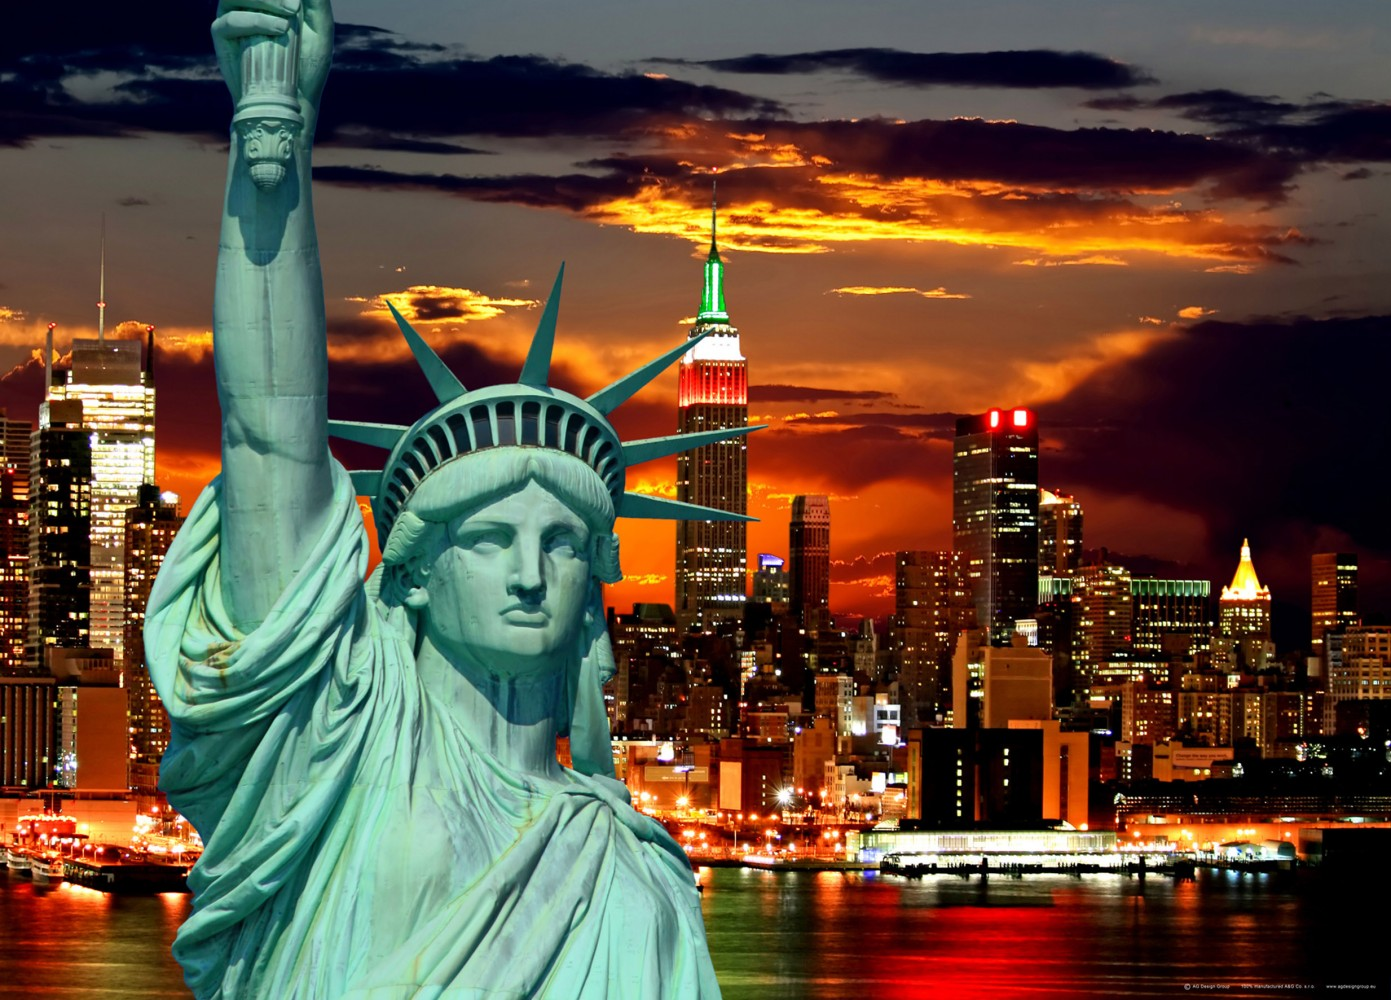 Xxl Poster Wall Mural Wallpaper Statue Of Liberty New York Skyline Photo 160 Cm X 115 Cm 1 75 Yd X 1 26 Yd